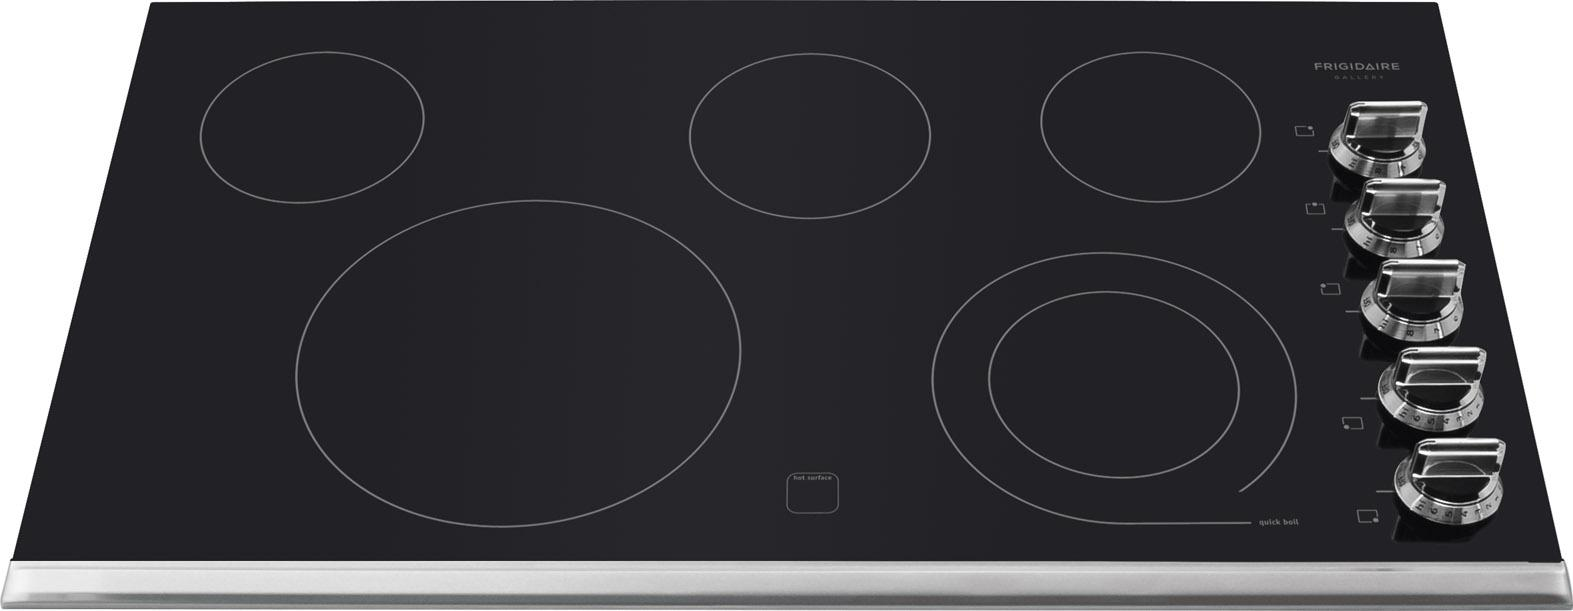 "Frigidaire Frigidaire Gallery Electric Cooktops Gallery 36"" Built-In Electric Cooktop - Item Number: FGEC3645PS"